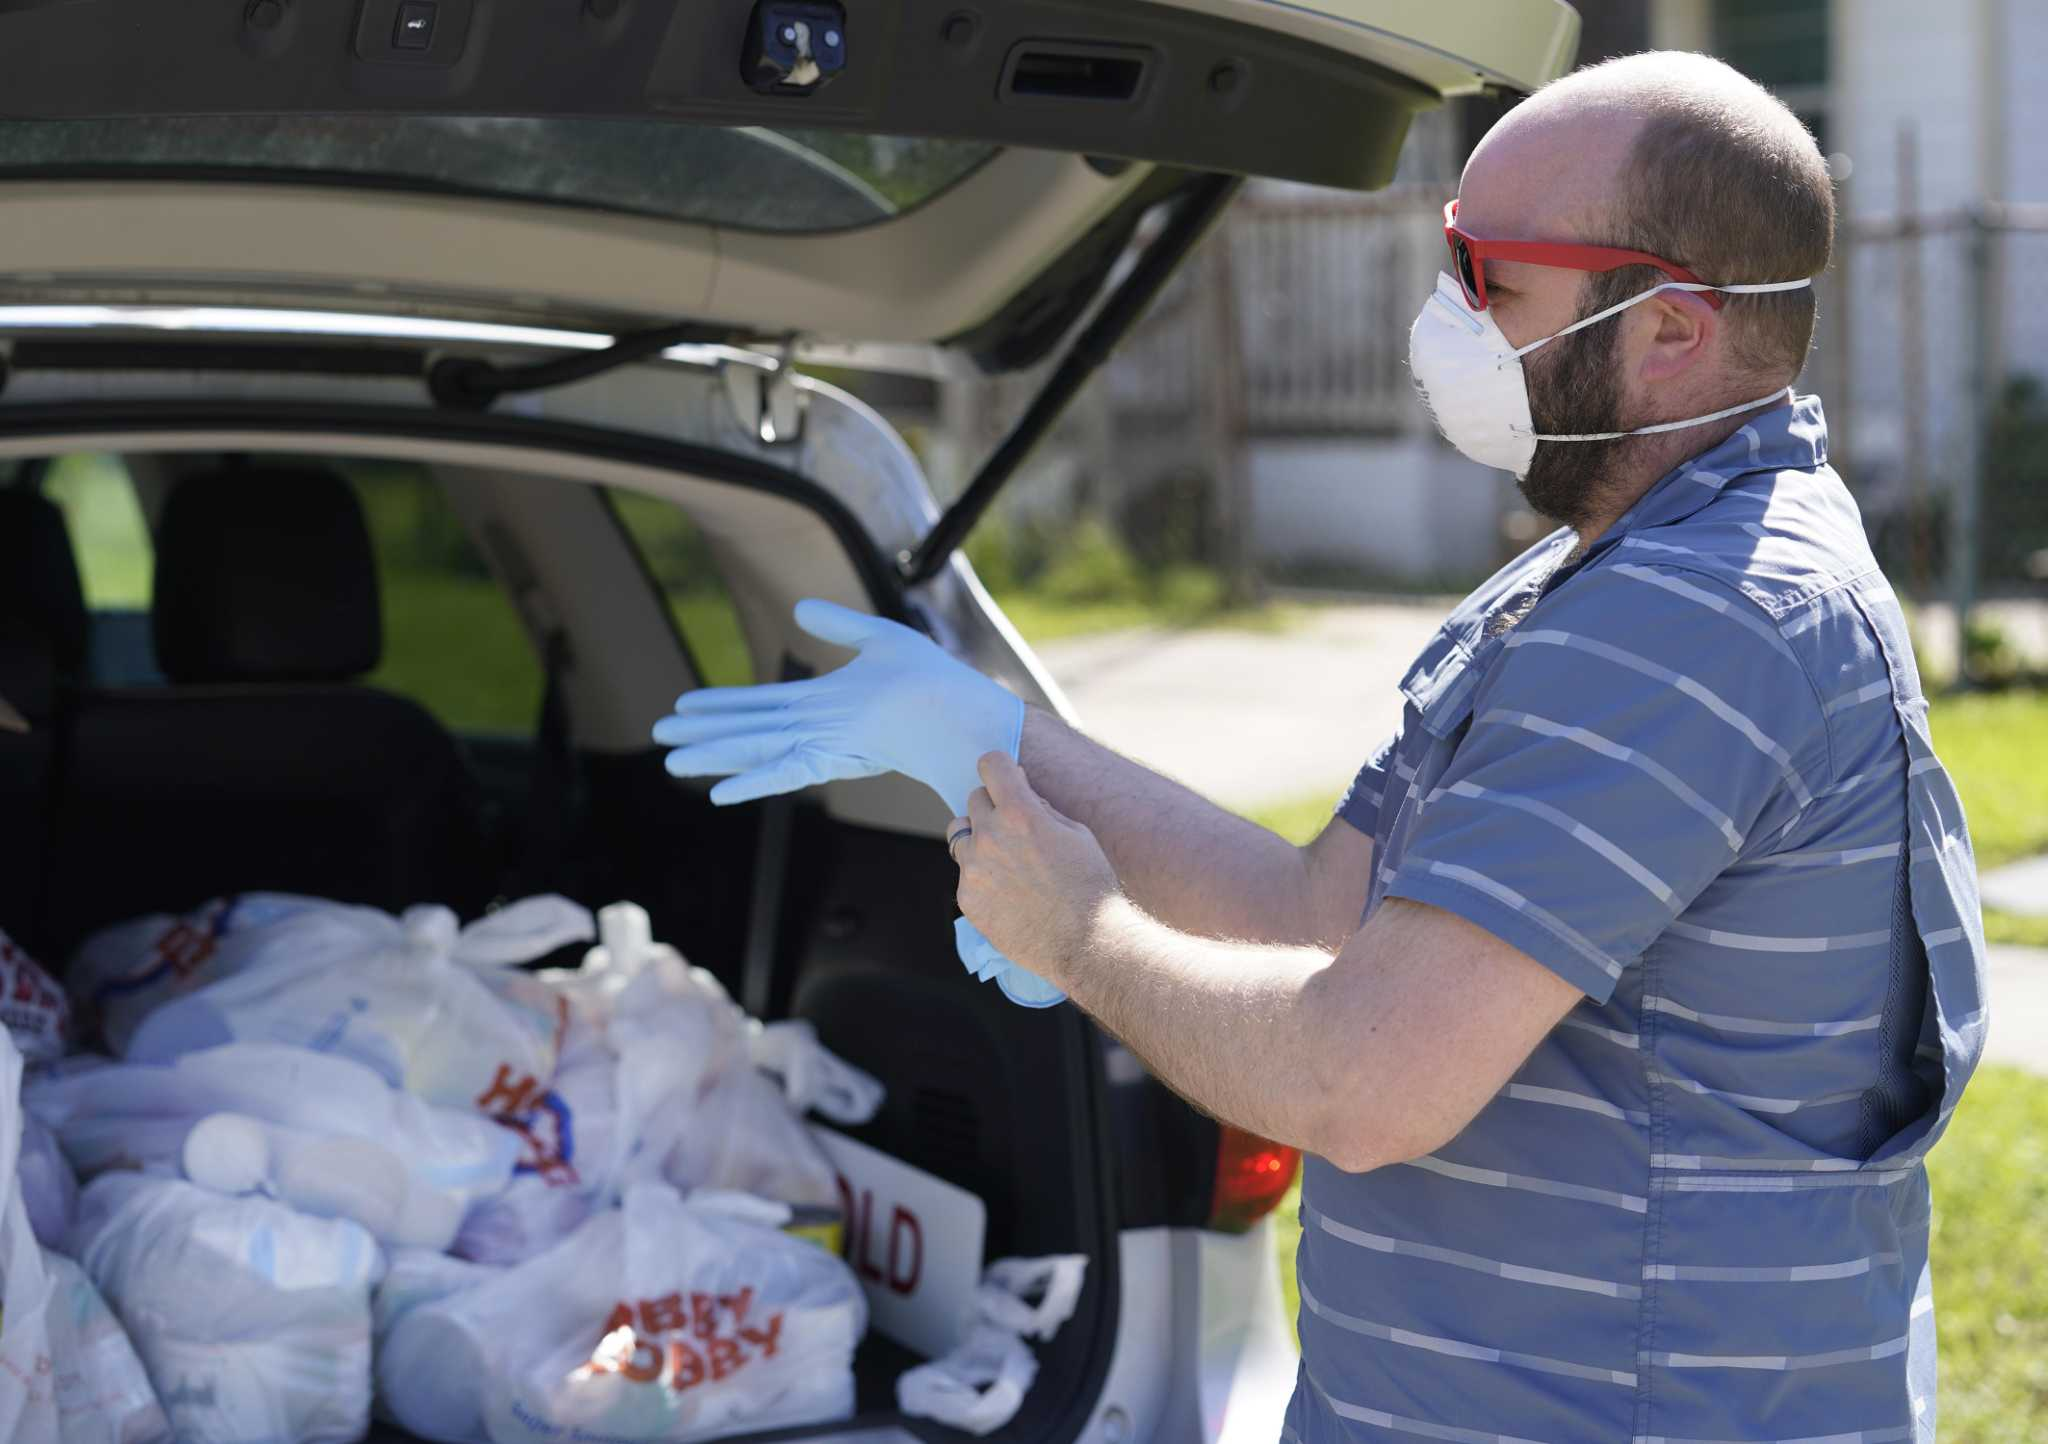 Picture of volunteer delivering food with mask and gloves on